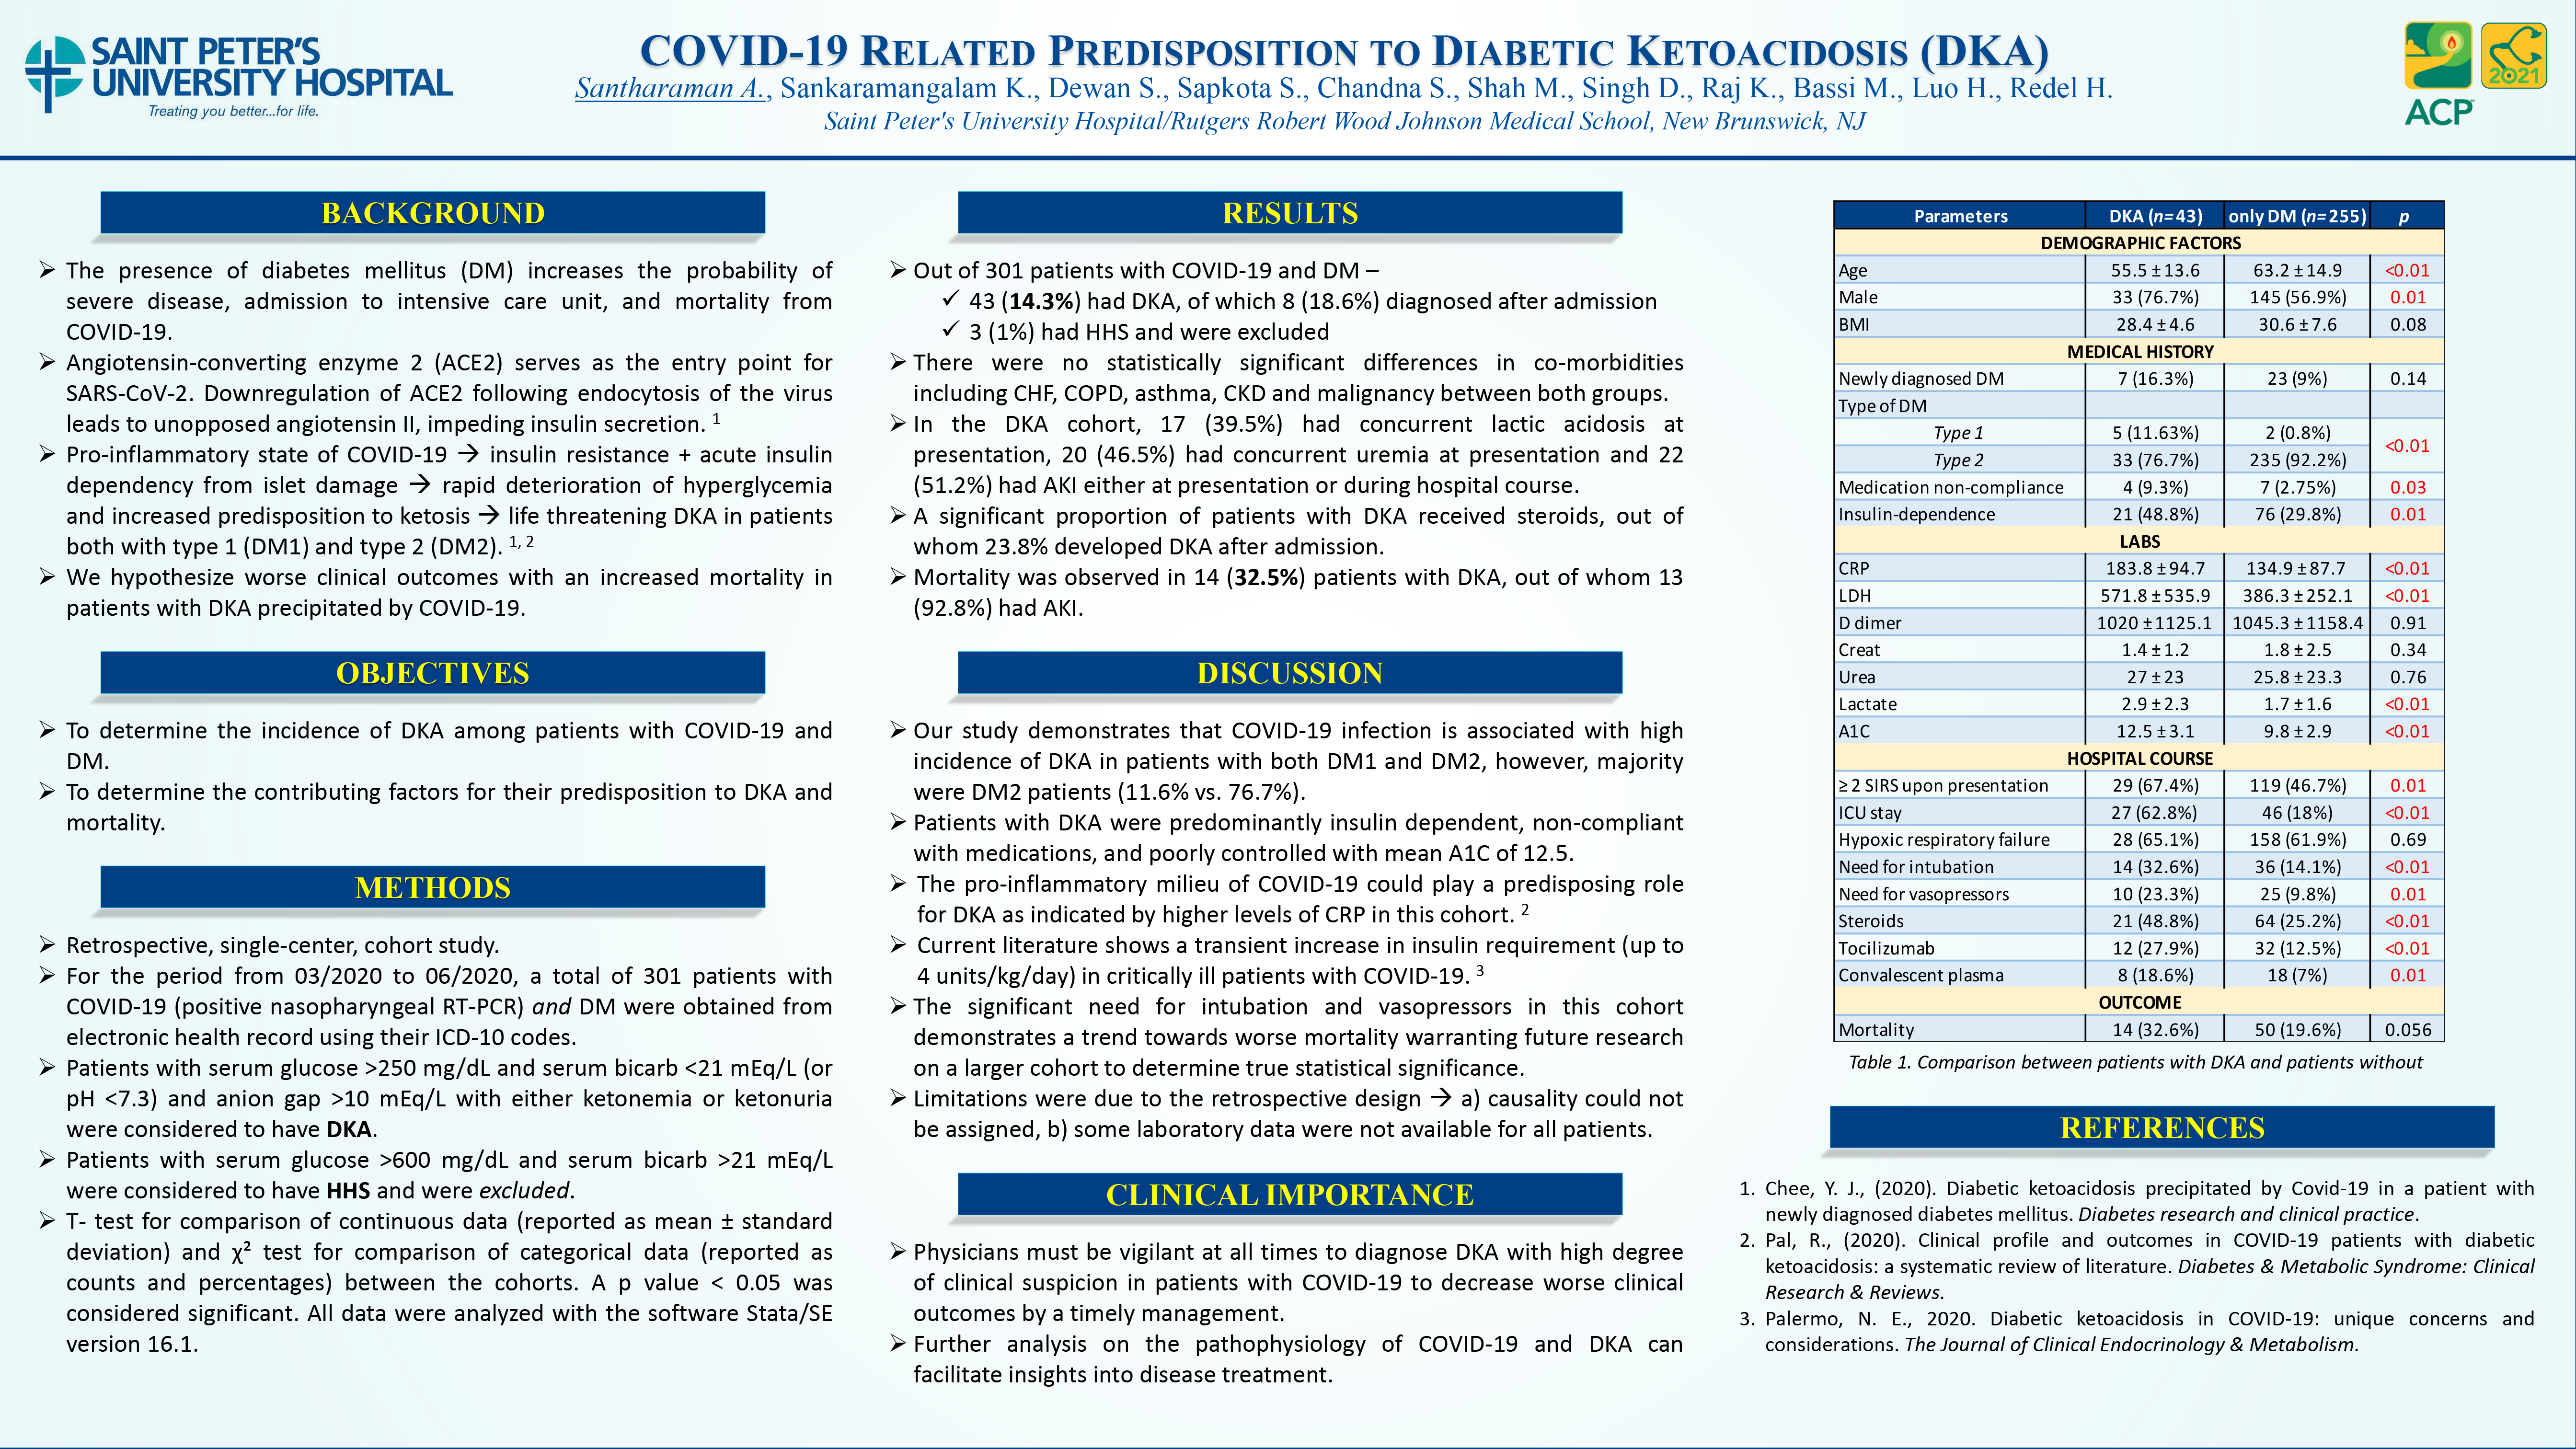 7-R-19-A Retrospective Review of COVID-19 Related Predisposition to Diabetic Ketoacidosis (DKA)